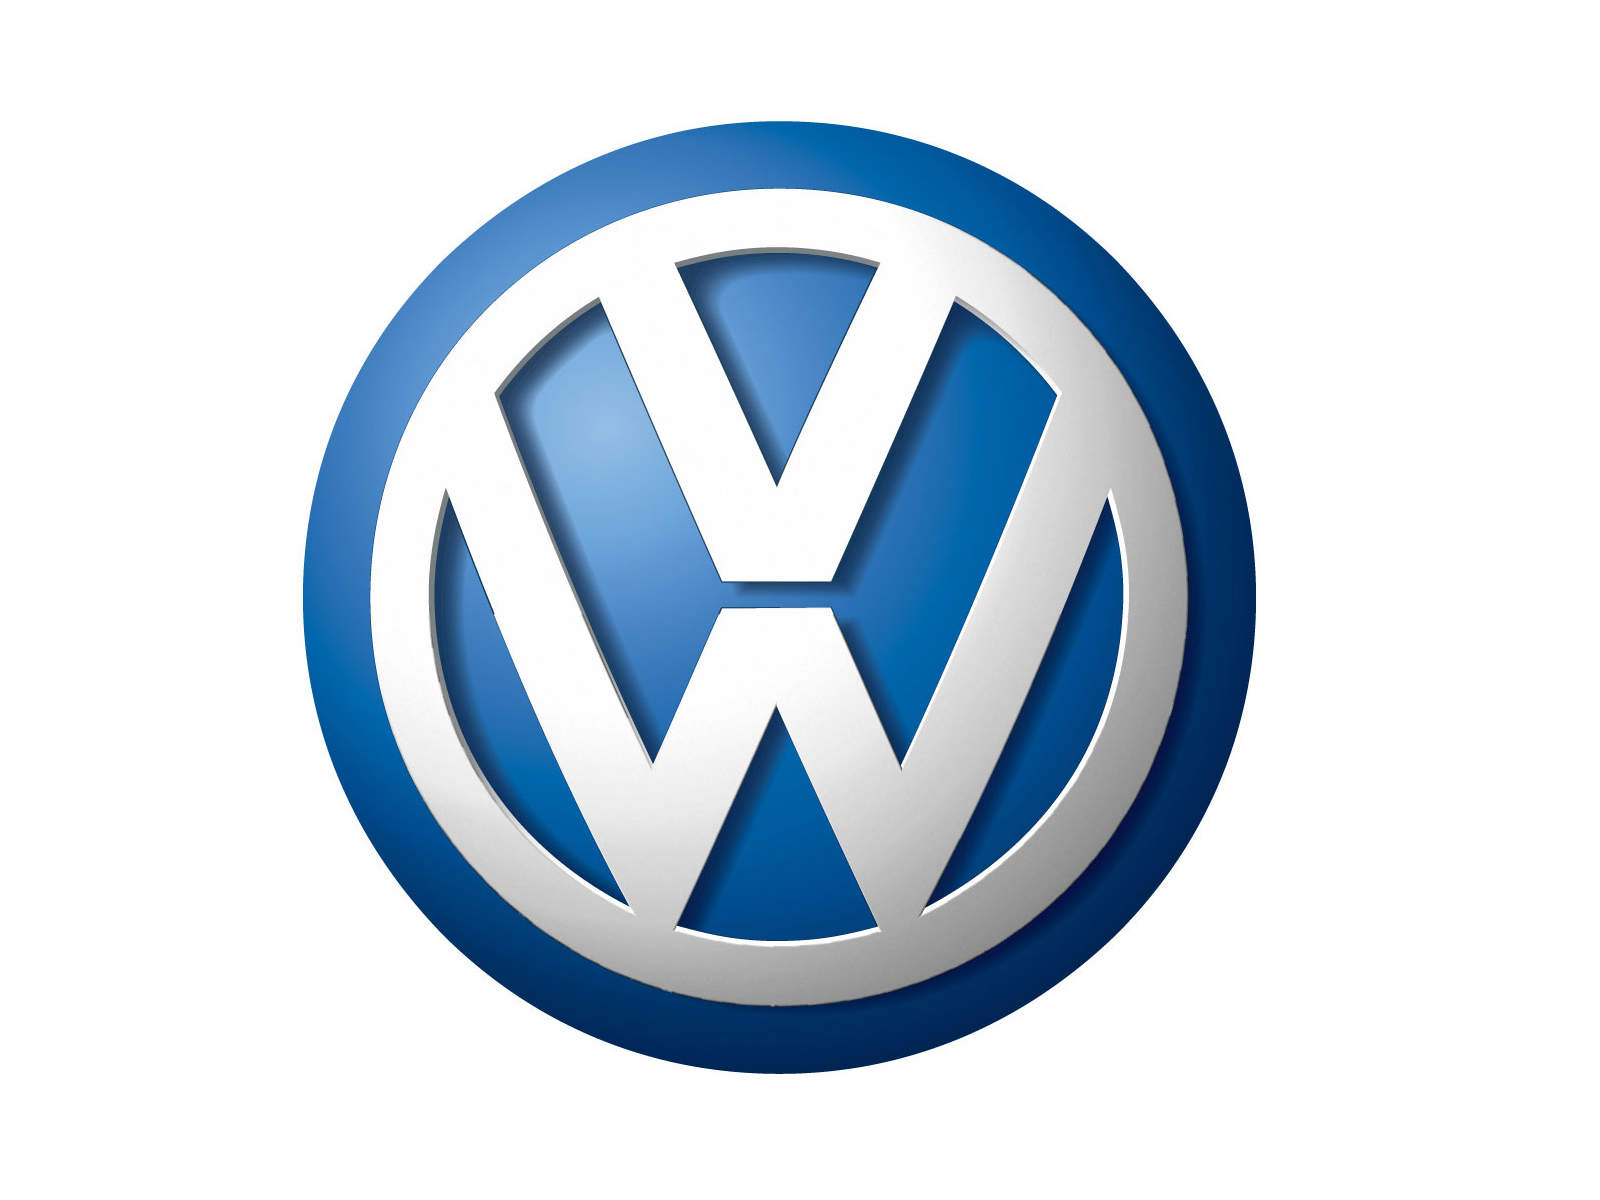 HD Wallpapers Volkswagen Logo Wallpaper 1600x1200